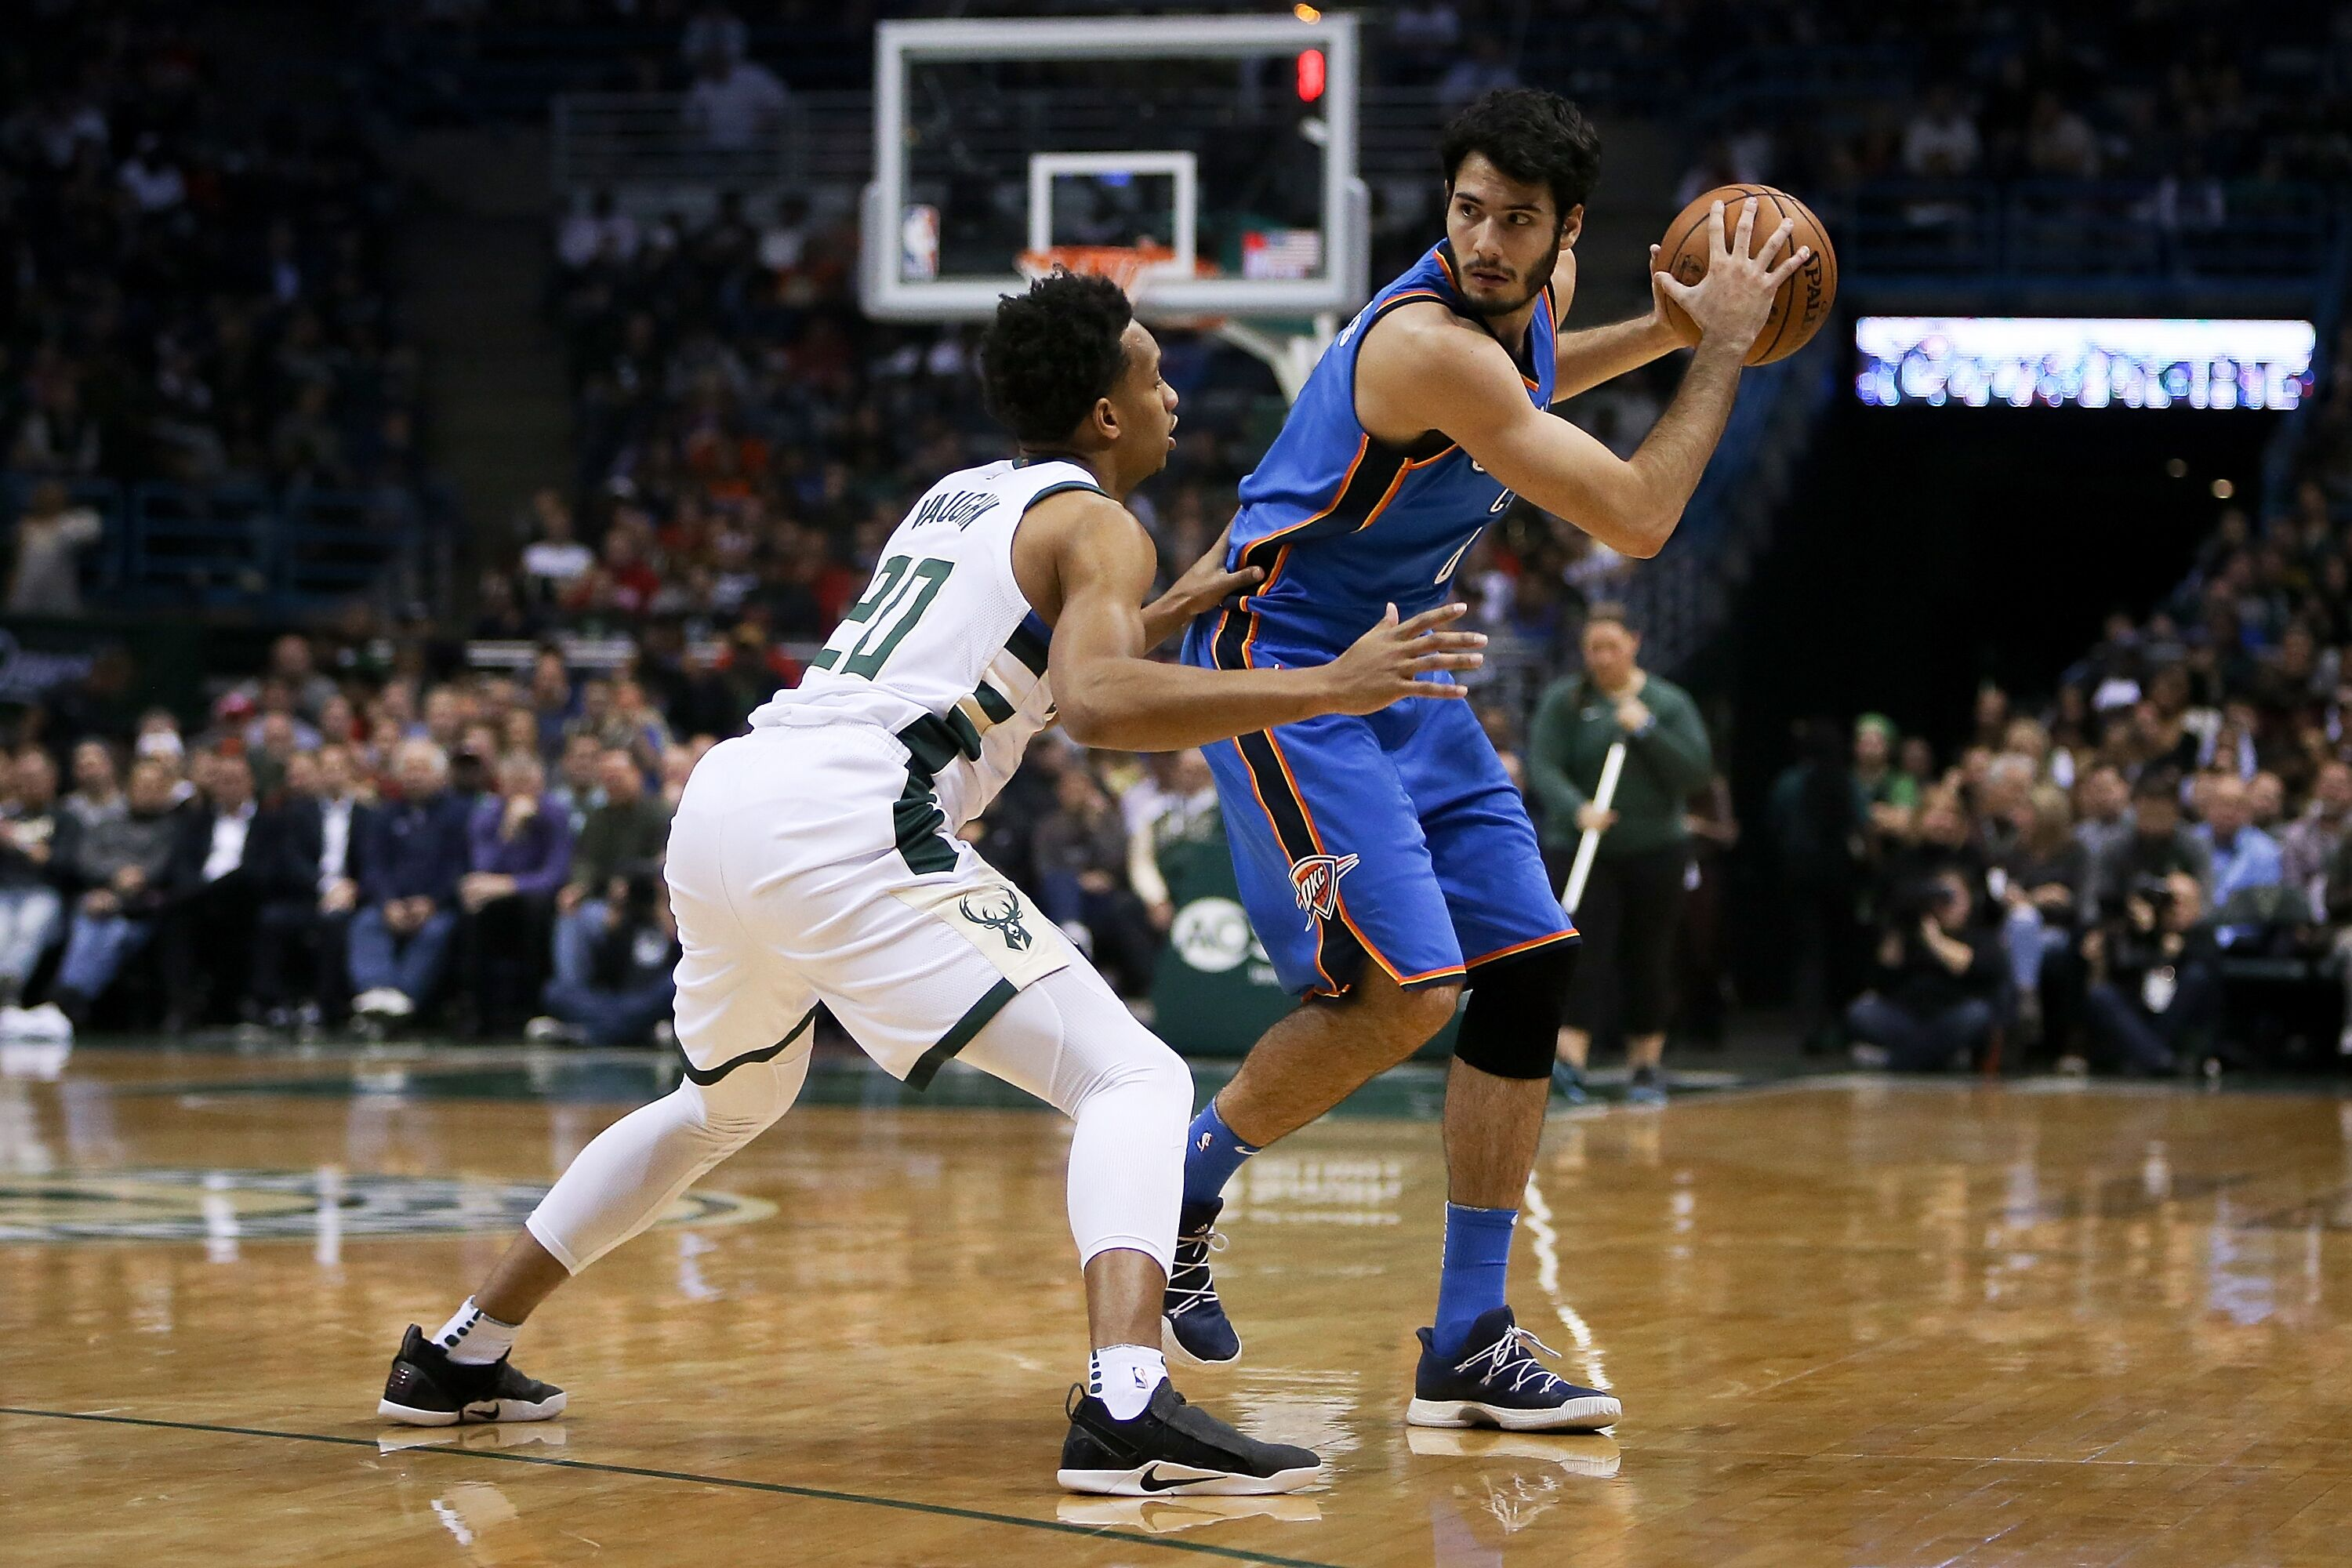 869398286-oklahoma-city-thunder-v-milwaukee-bucks.jpg